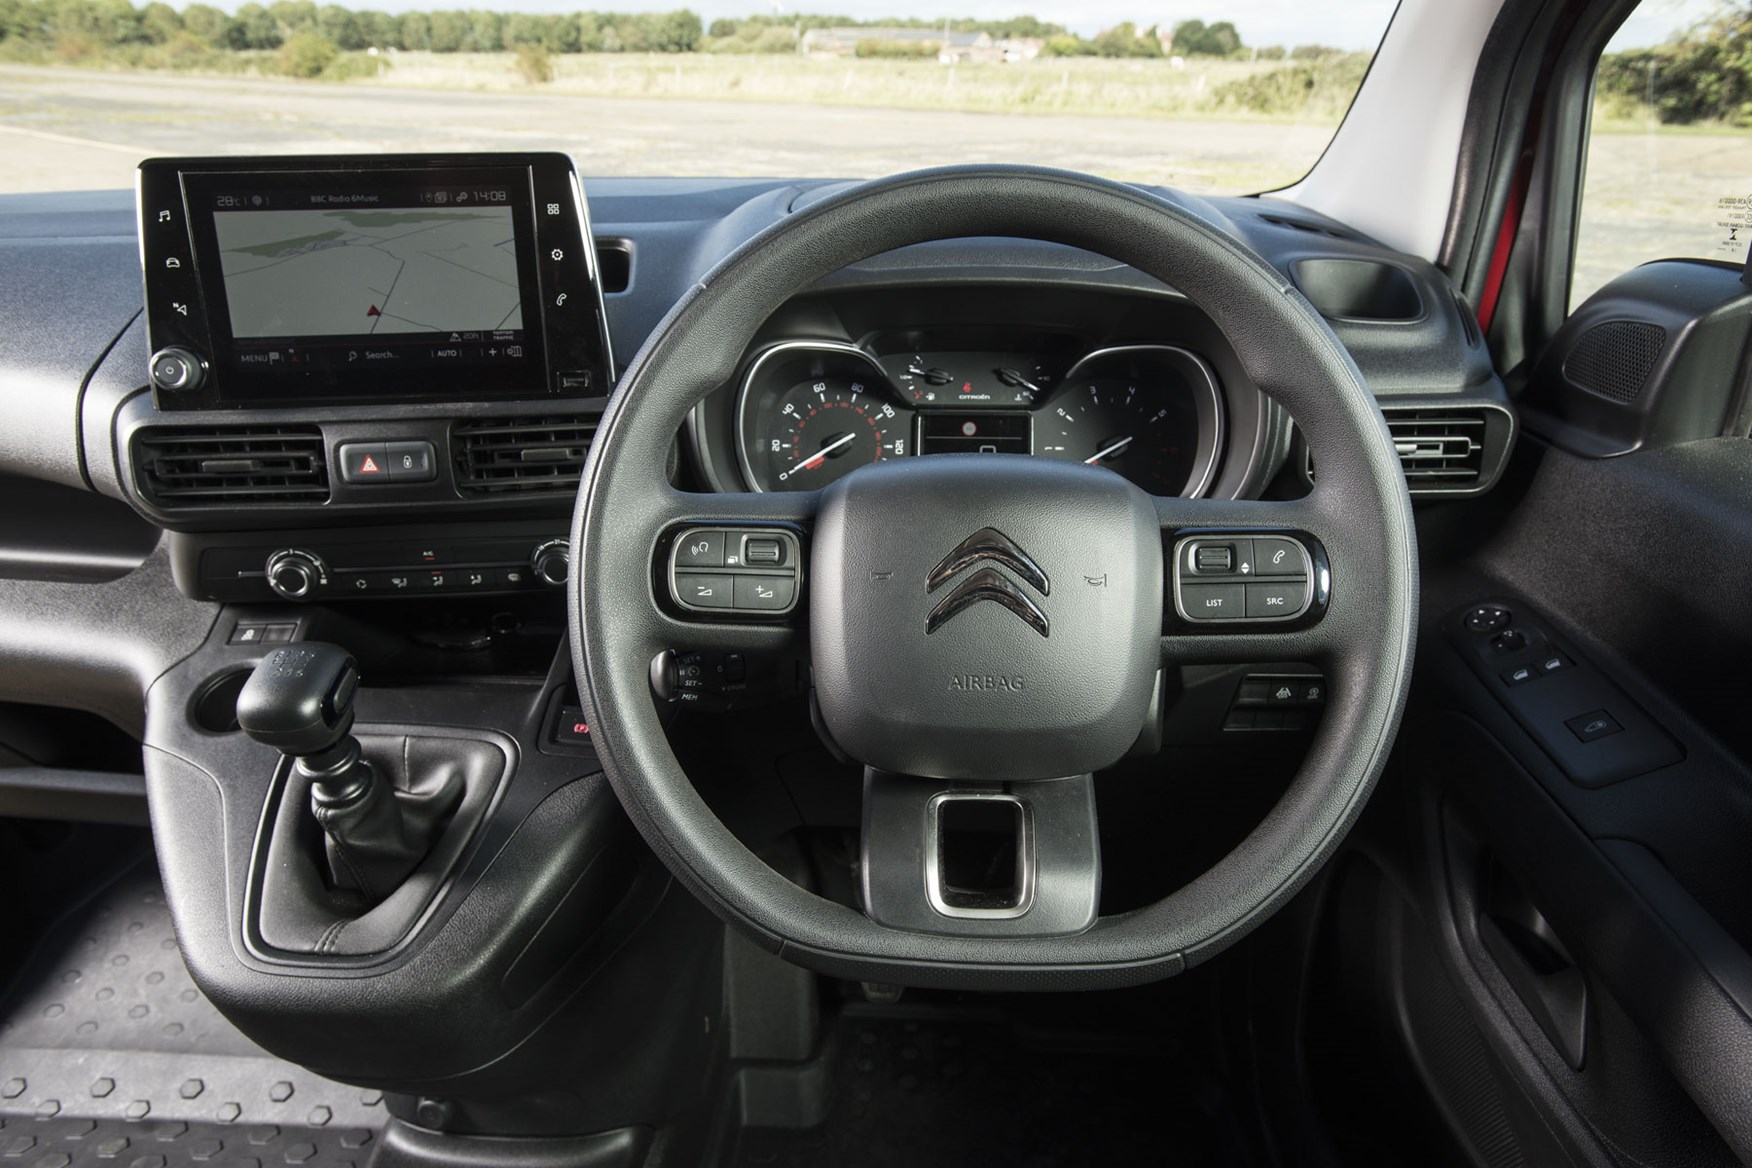 Citroen Berlingo van review - 2019 model, steering wheel and infotainment screen